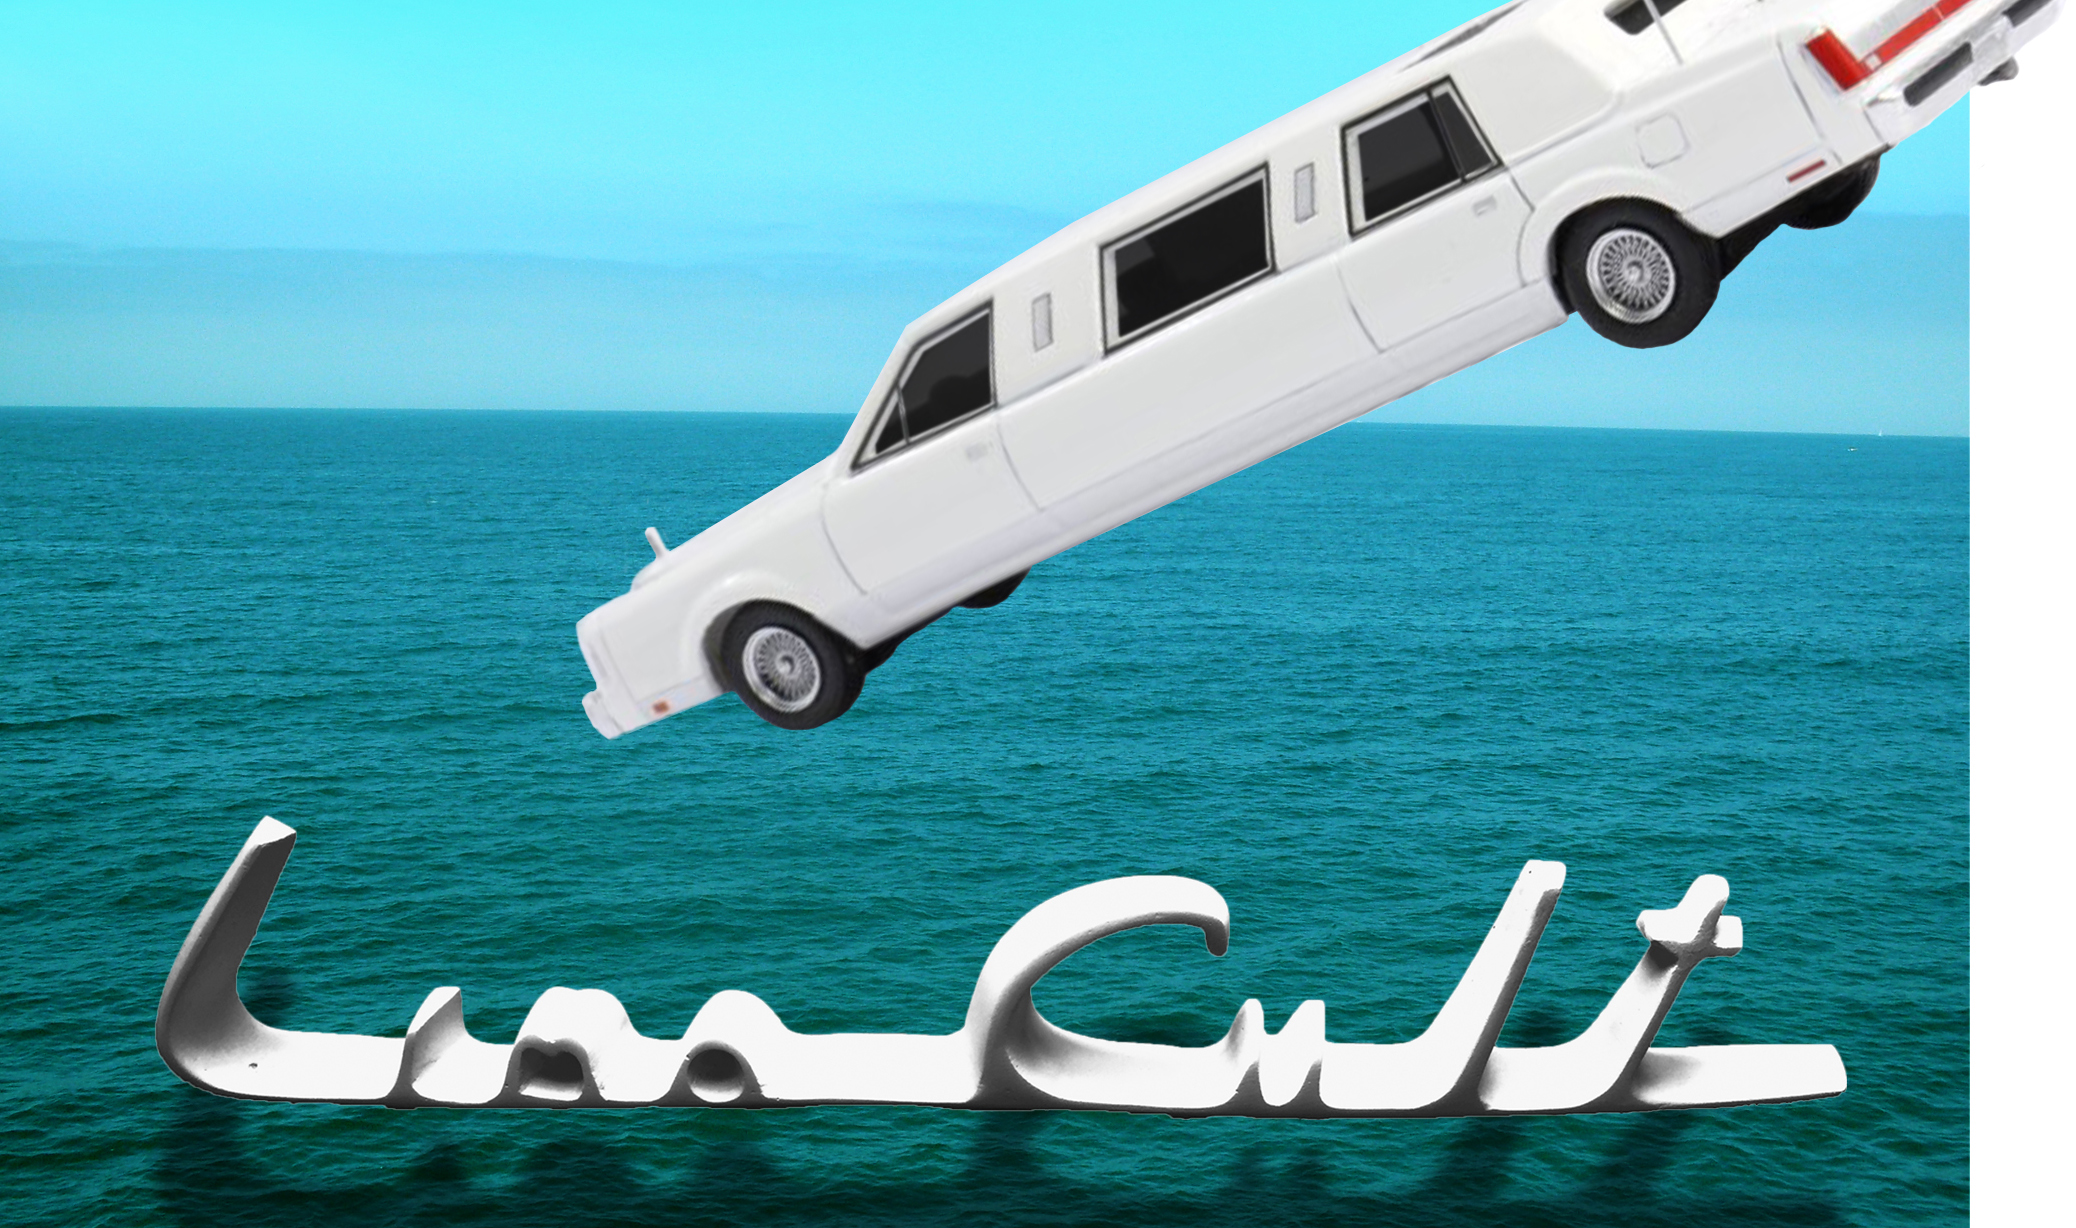 LIMO CULT